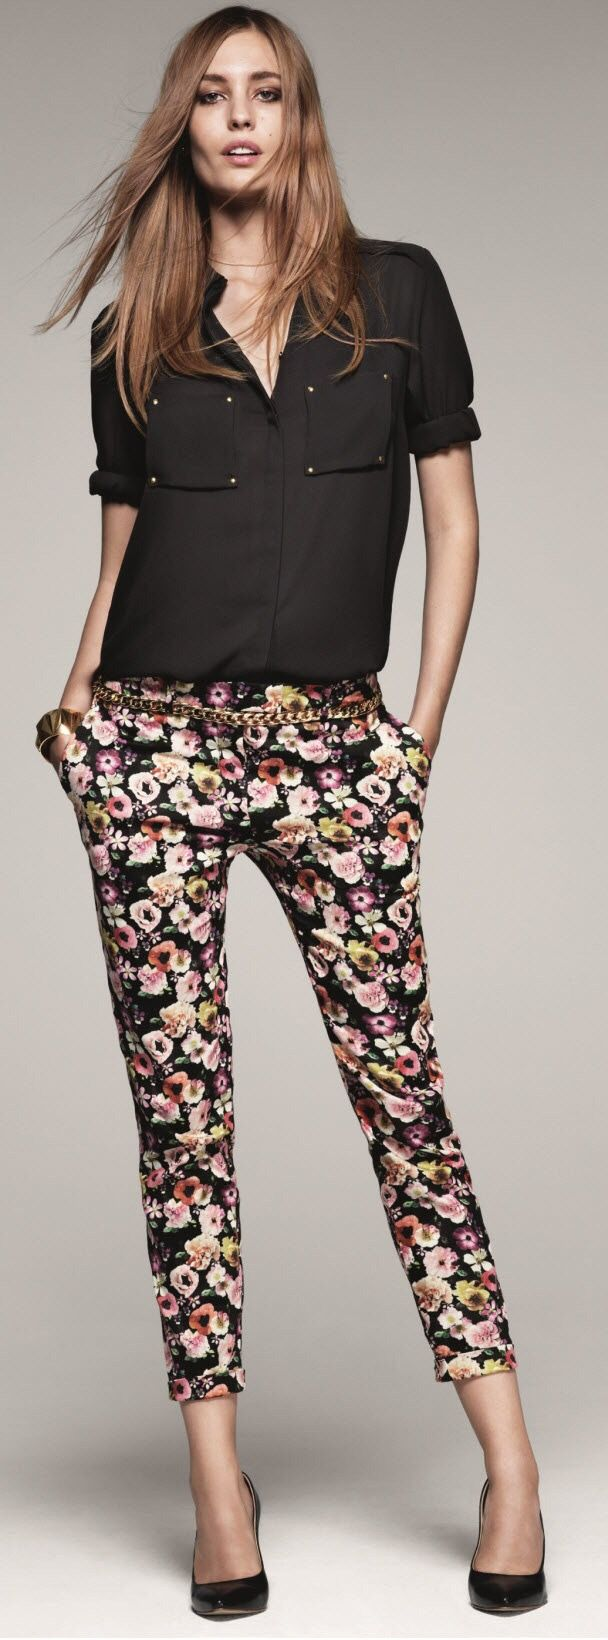 Pants from H&M